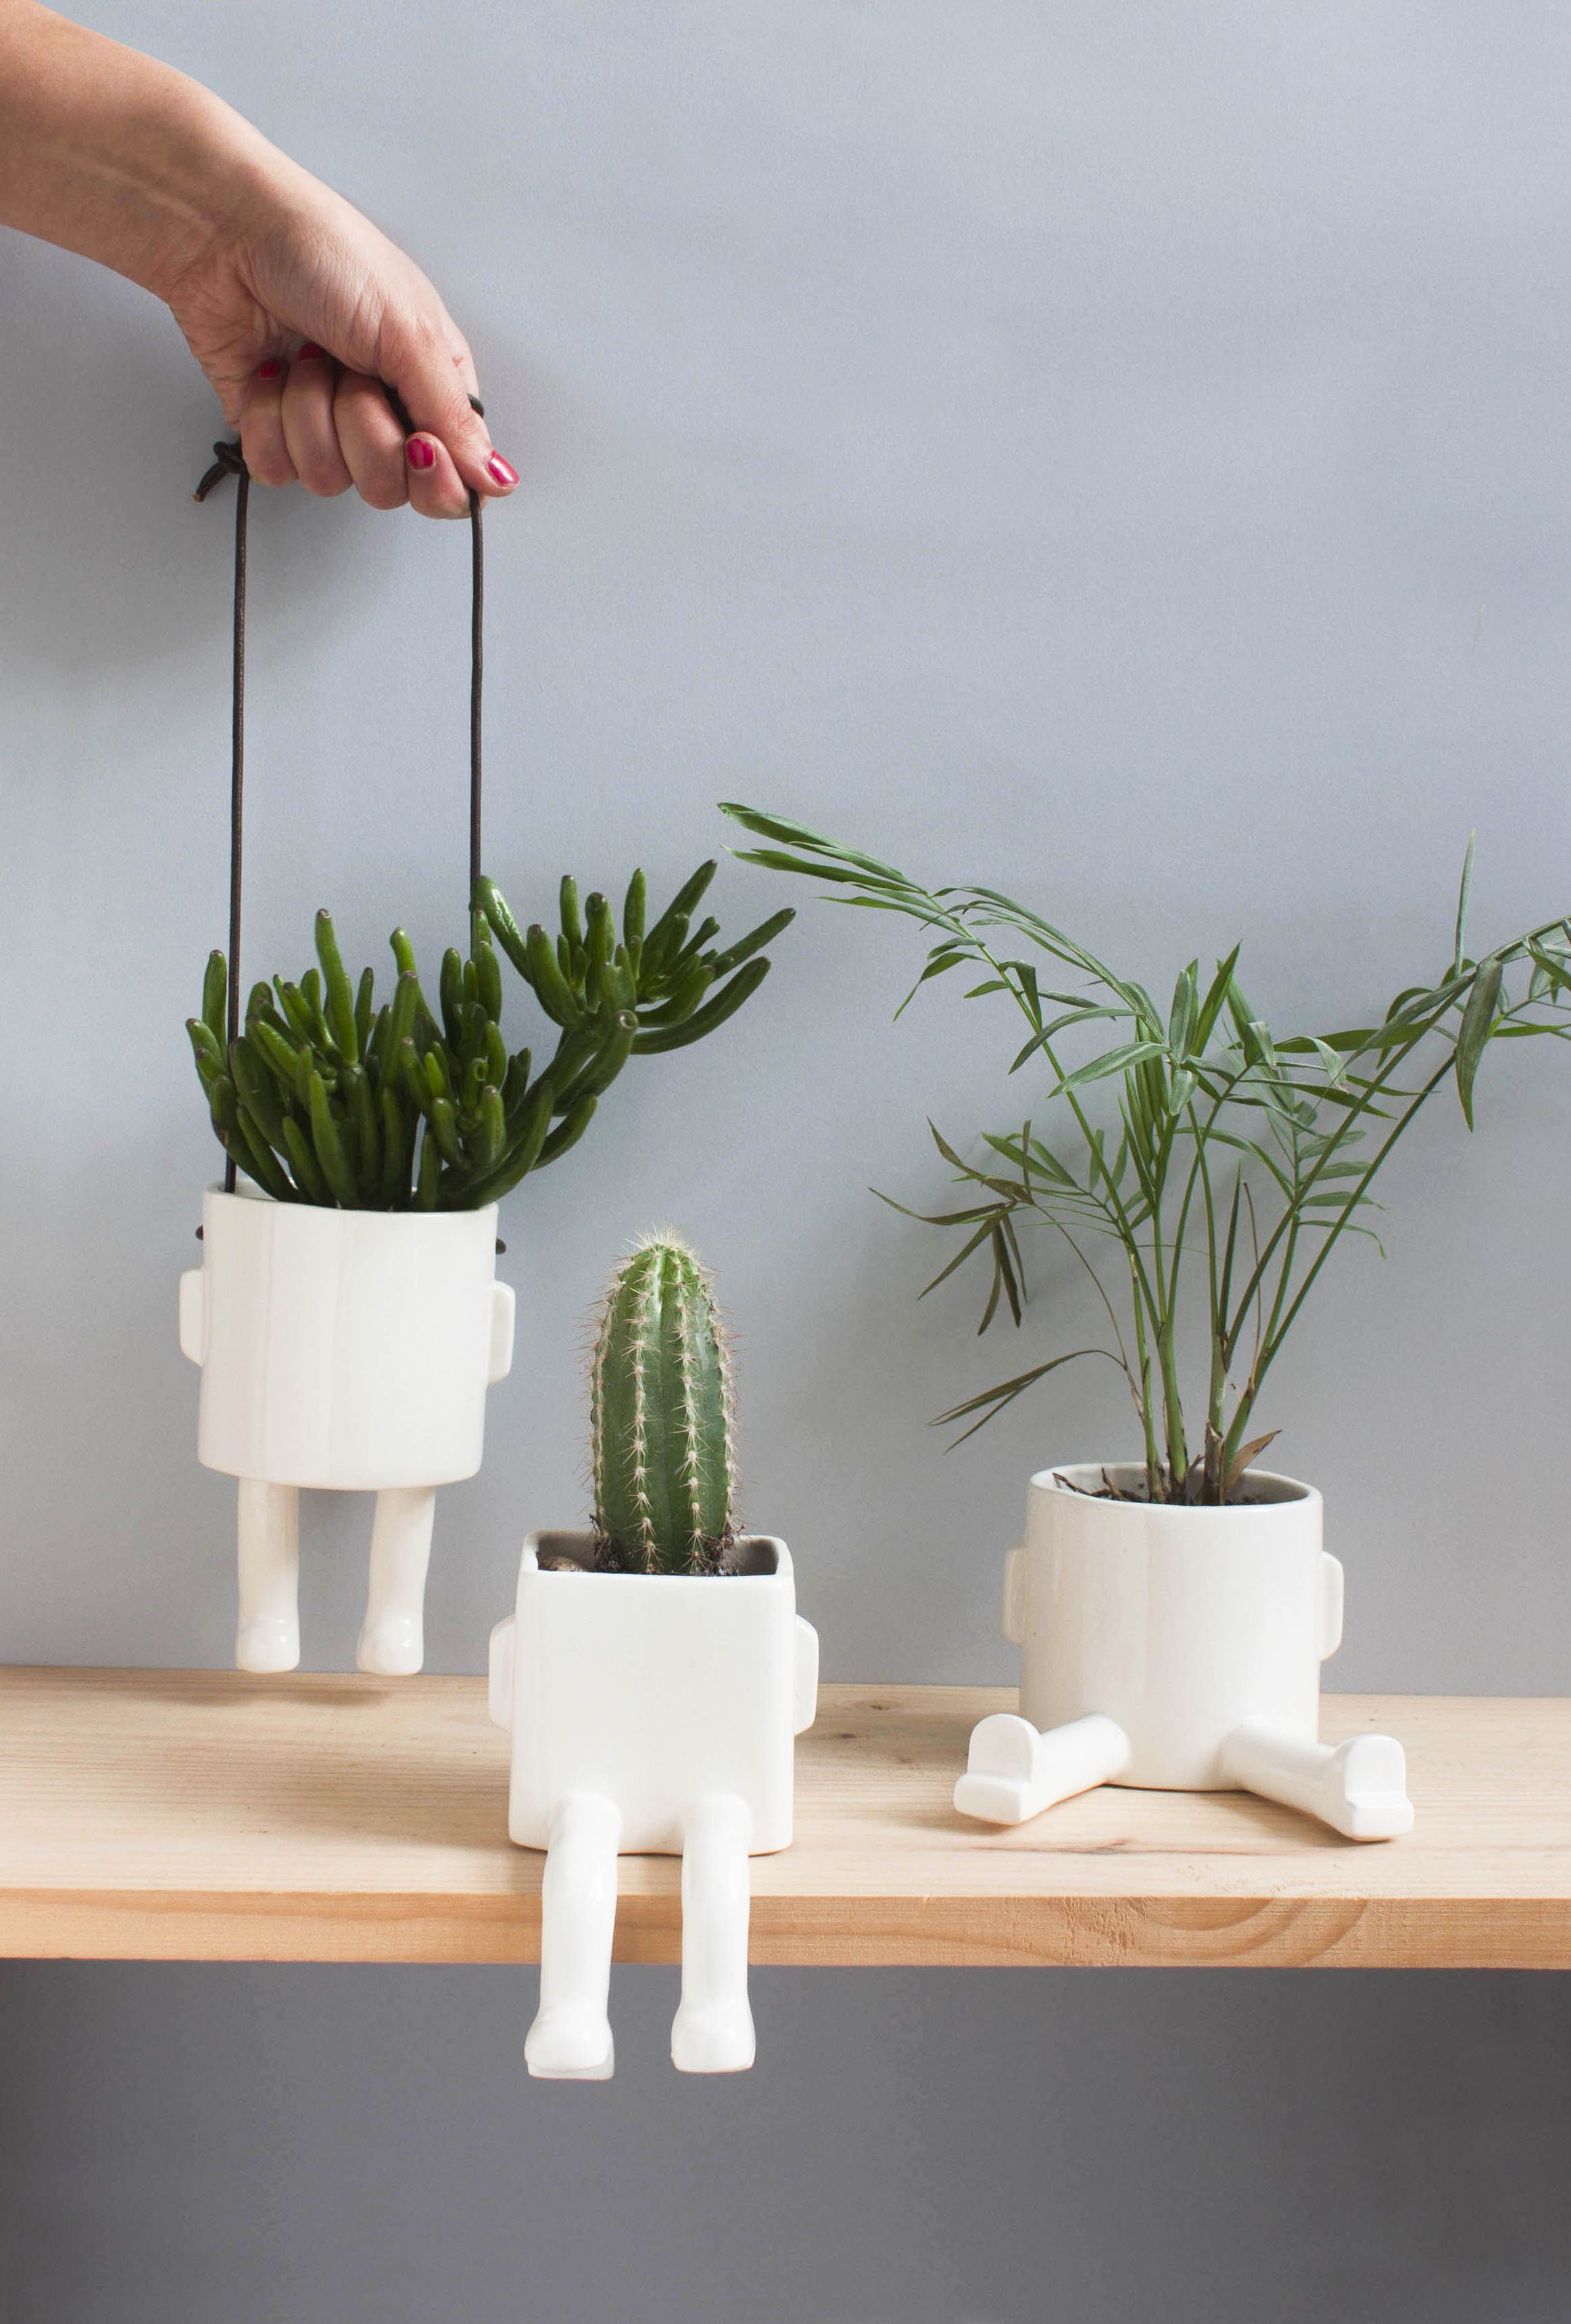 quirky ceramic plant pots with feet